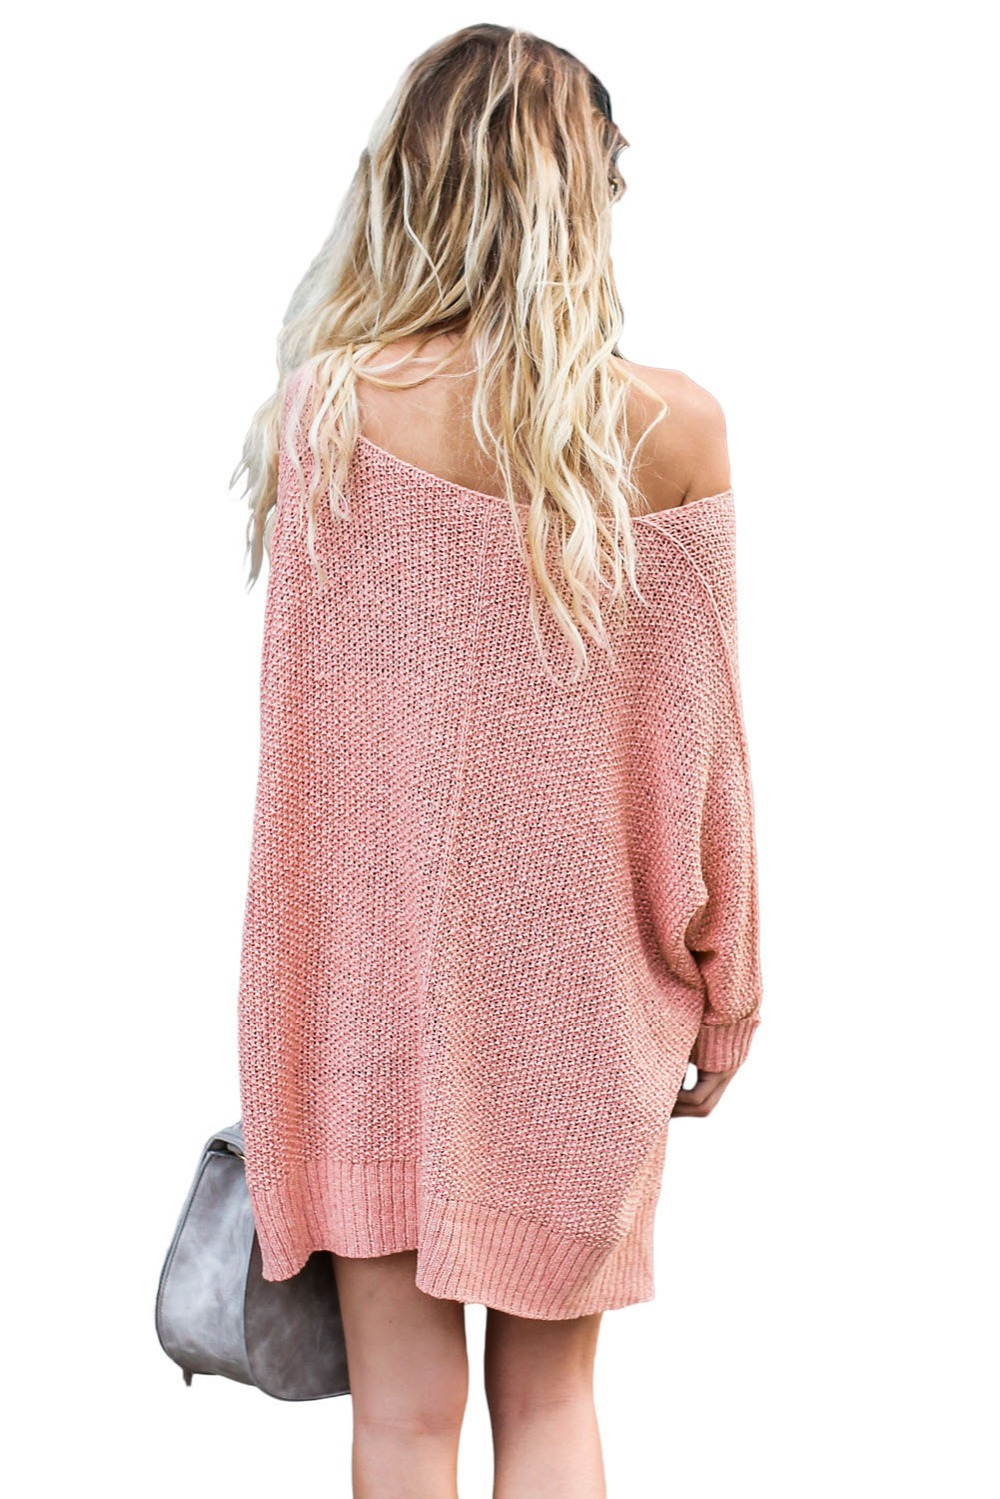 Pink-Oversized-Knit-High-low-Slit-Side-Sweater-LC27680-10-3